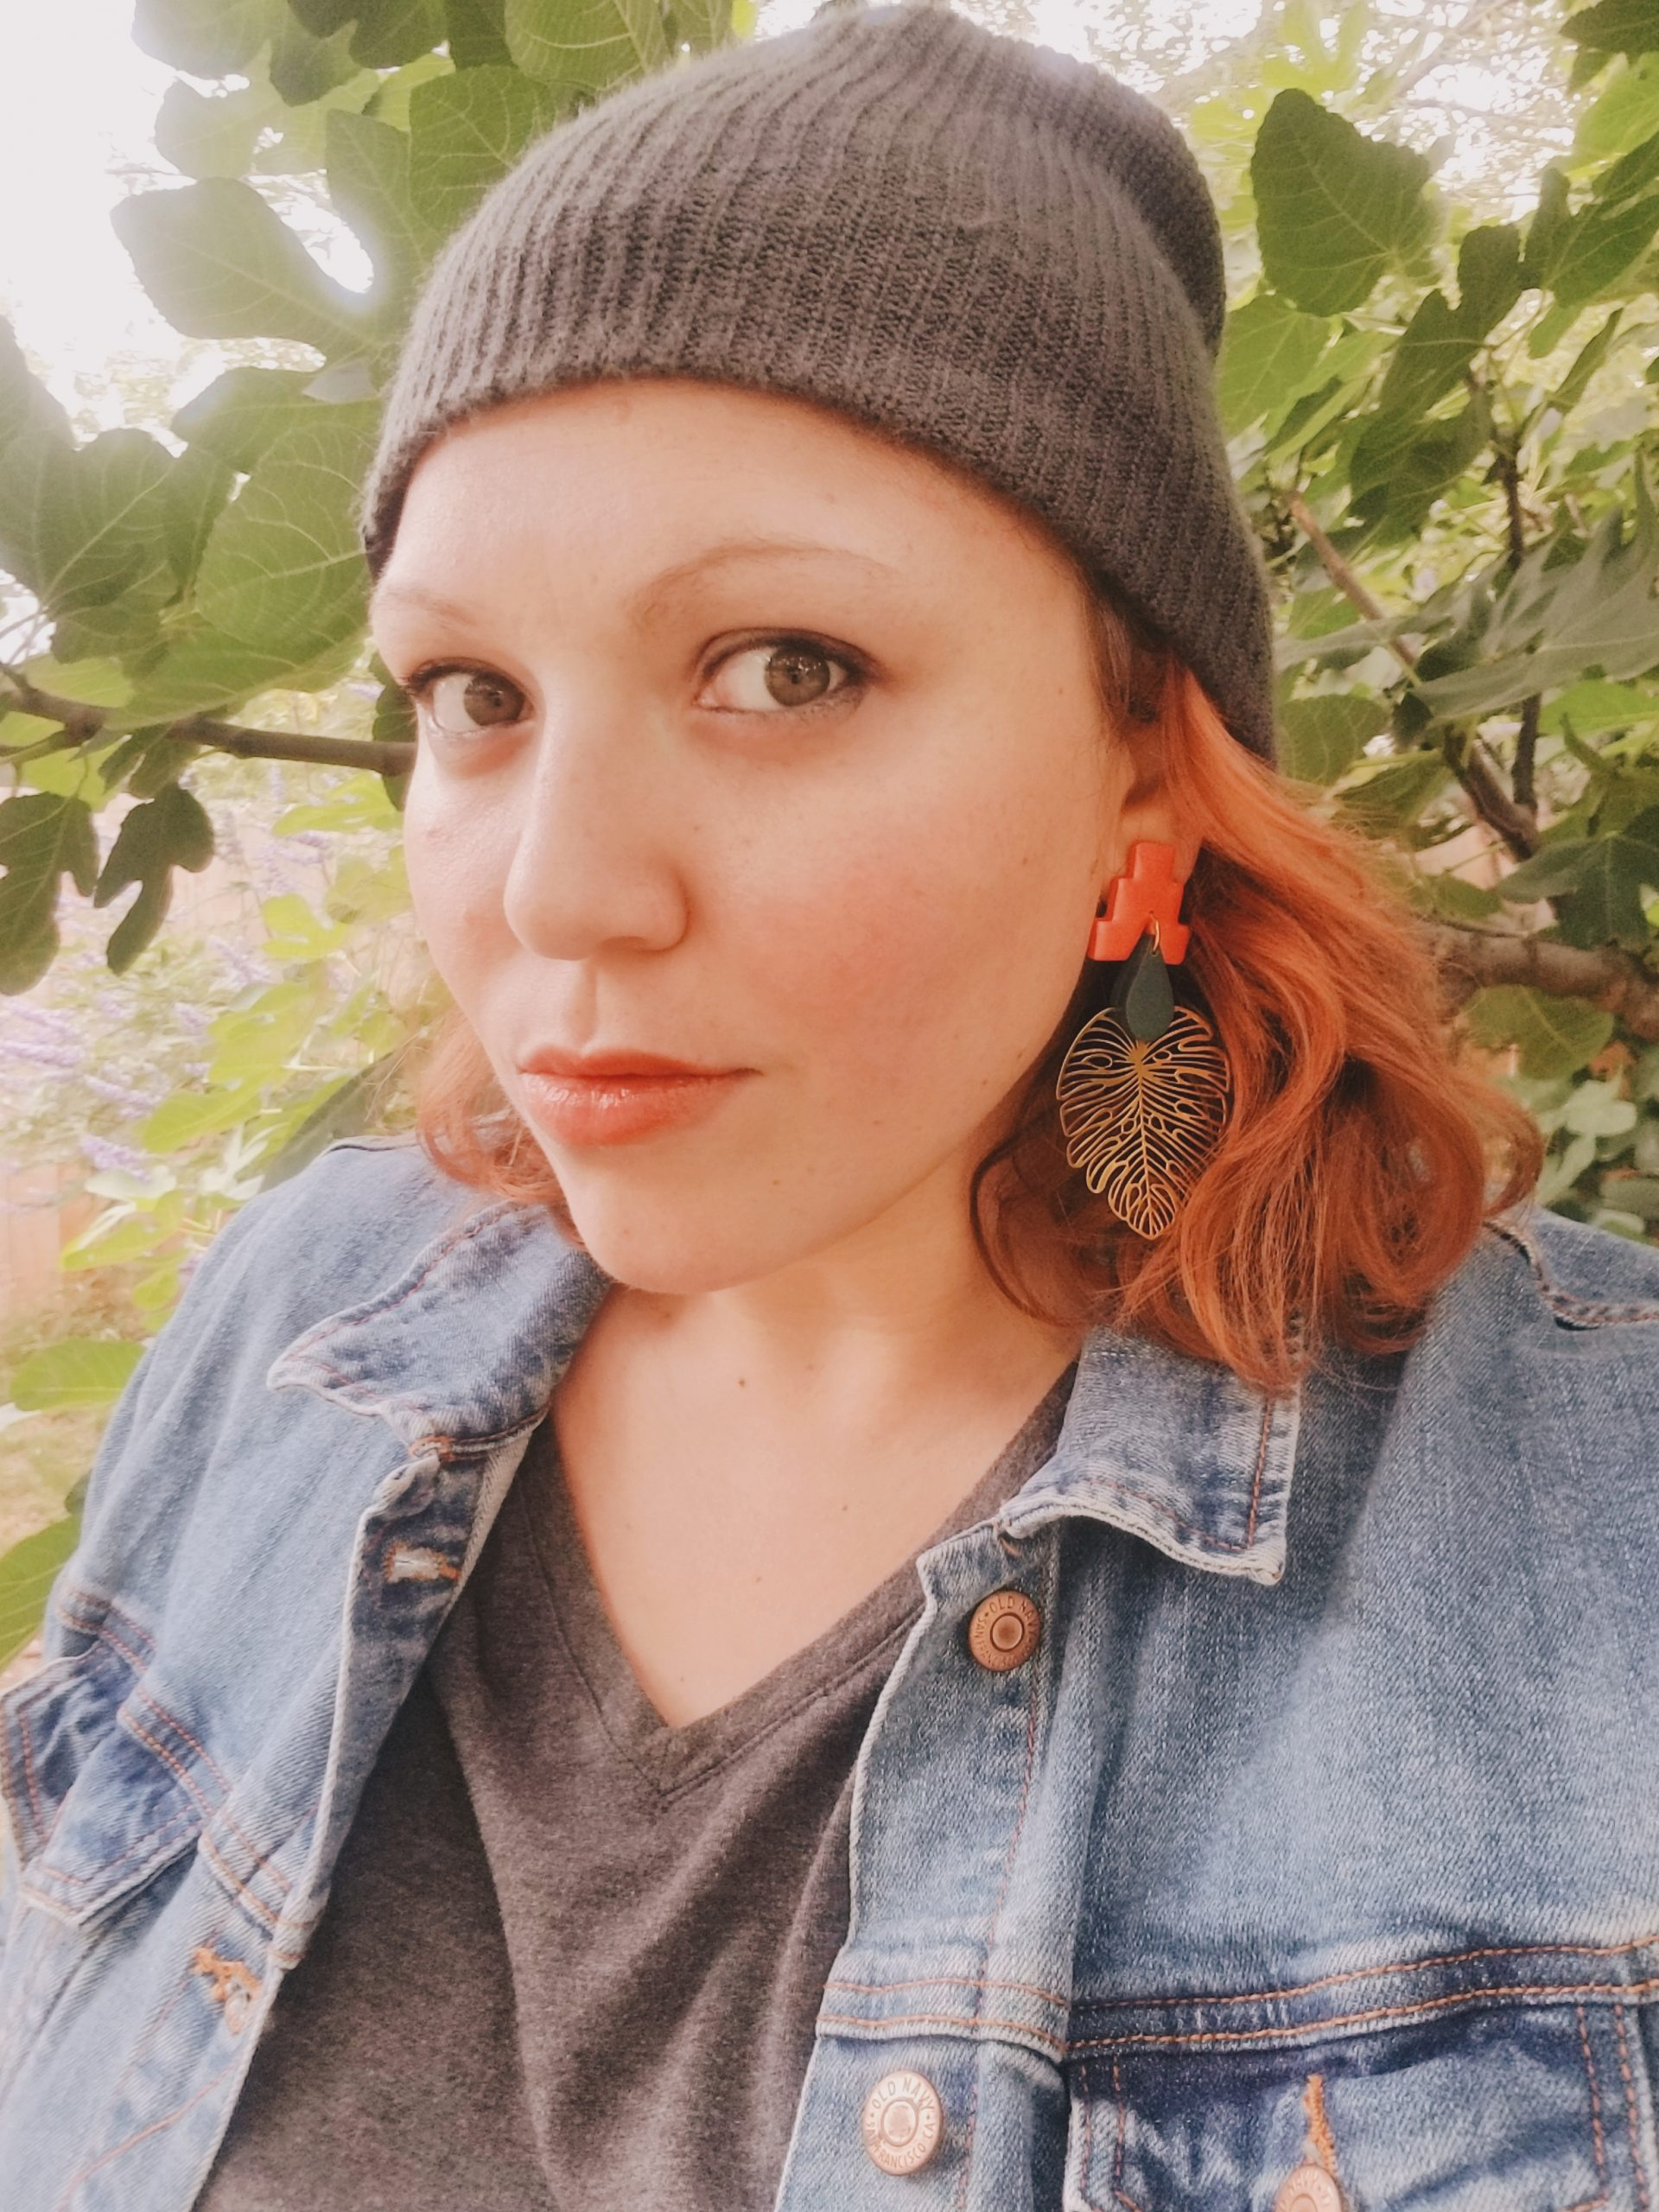 redhead woman in a grey beanie looking at the camera